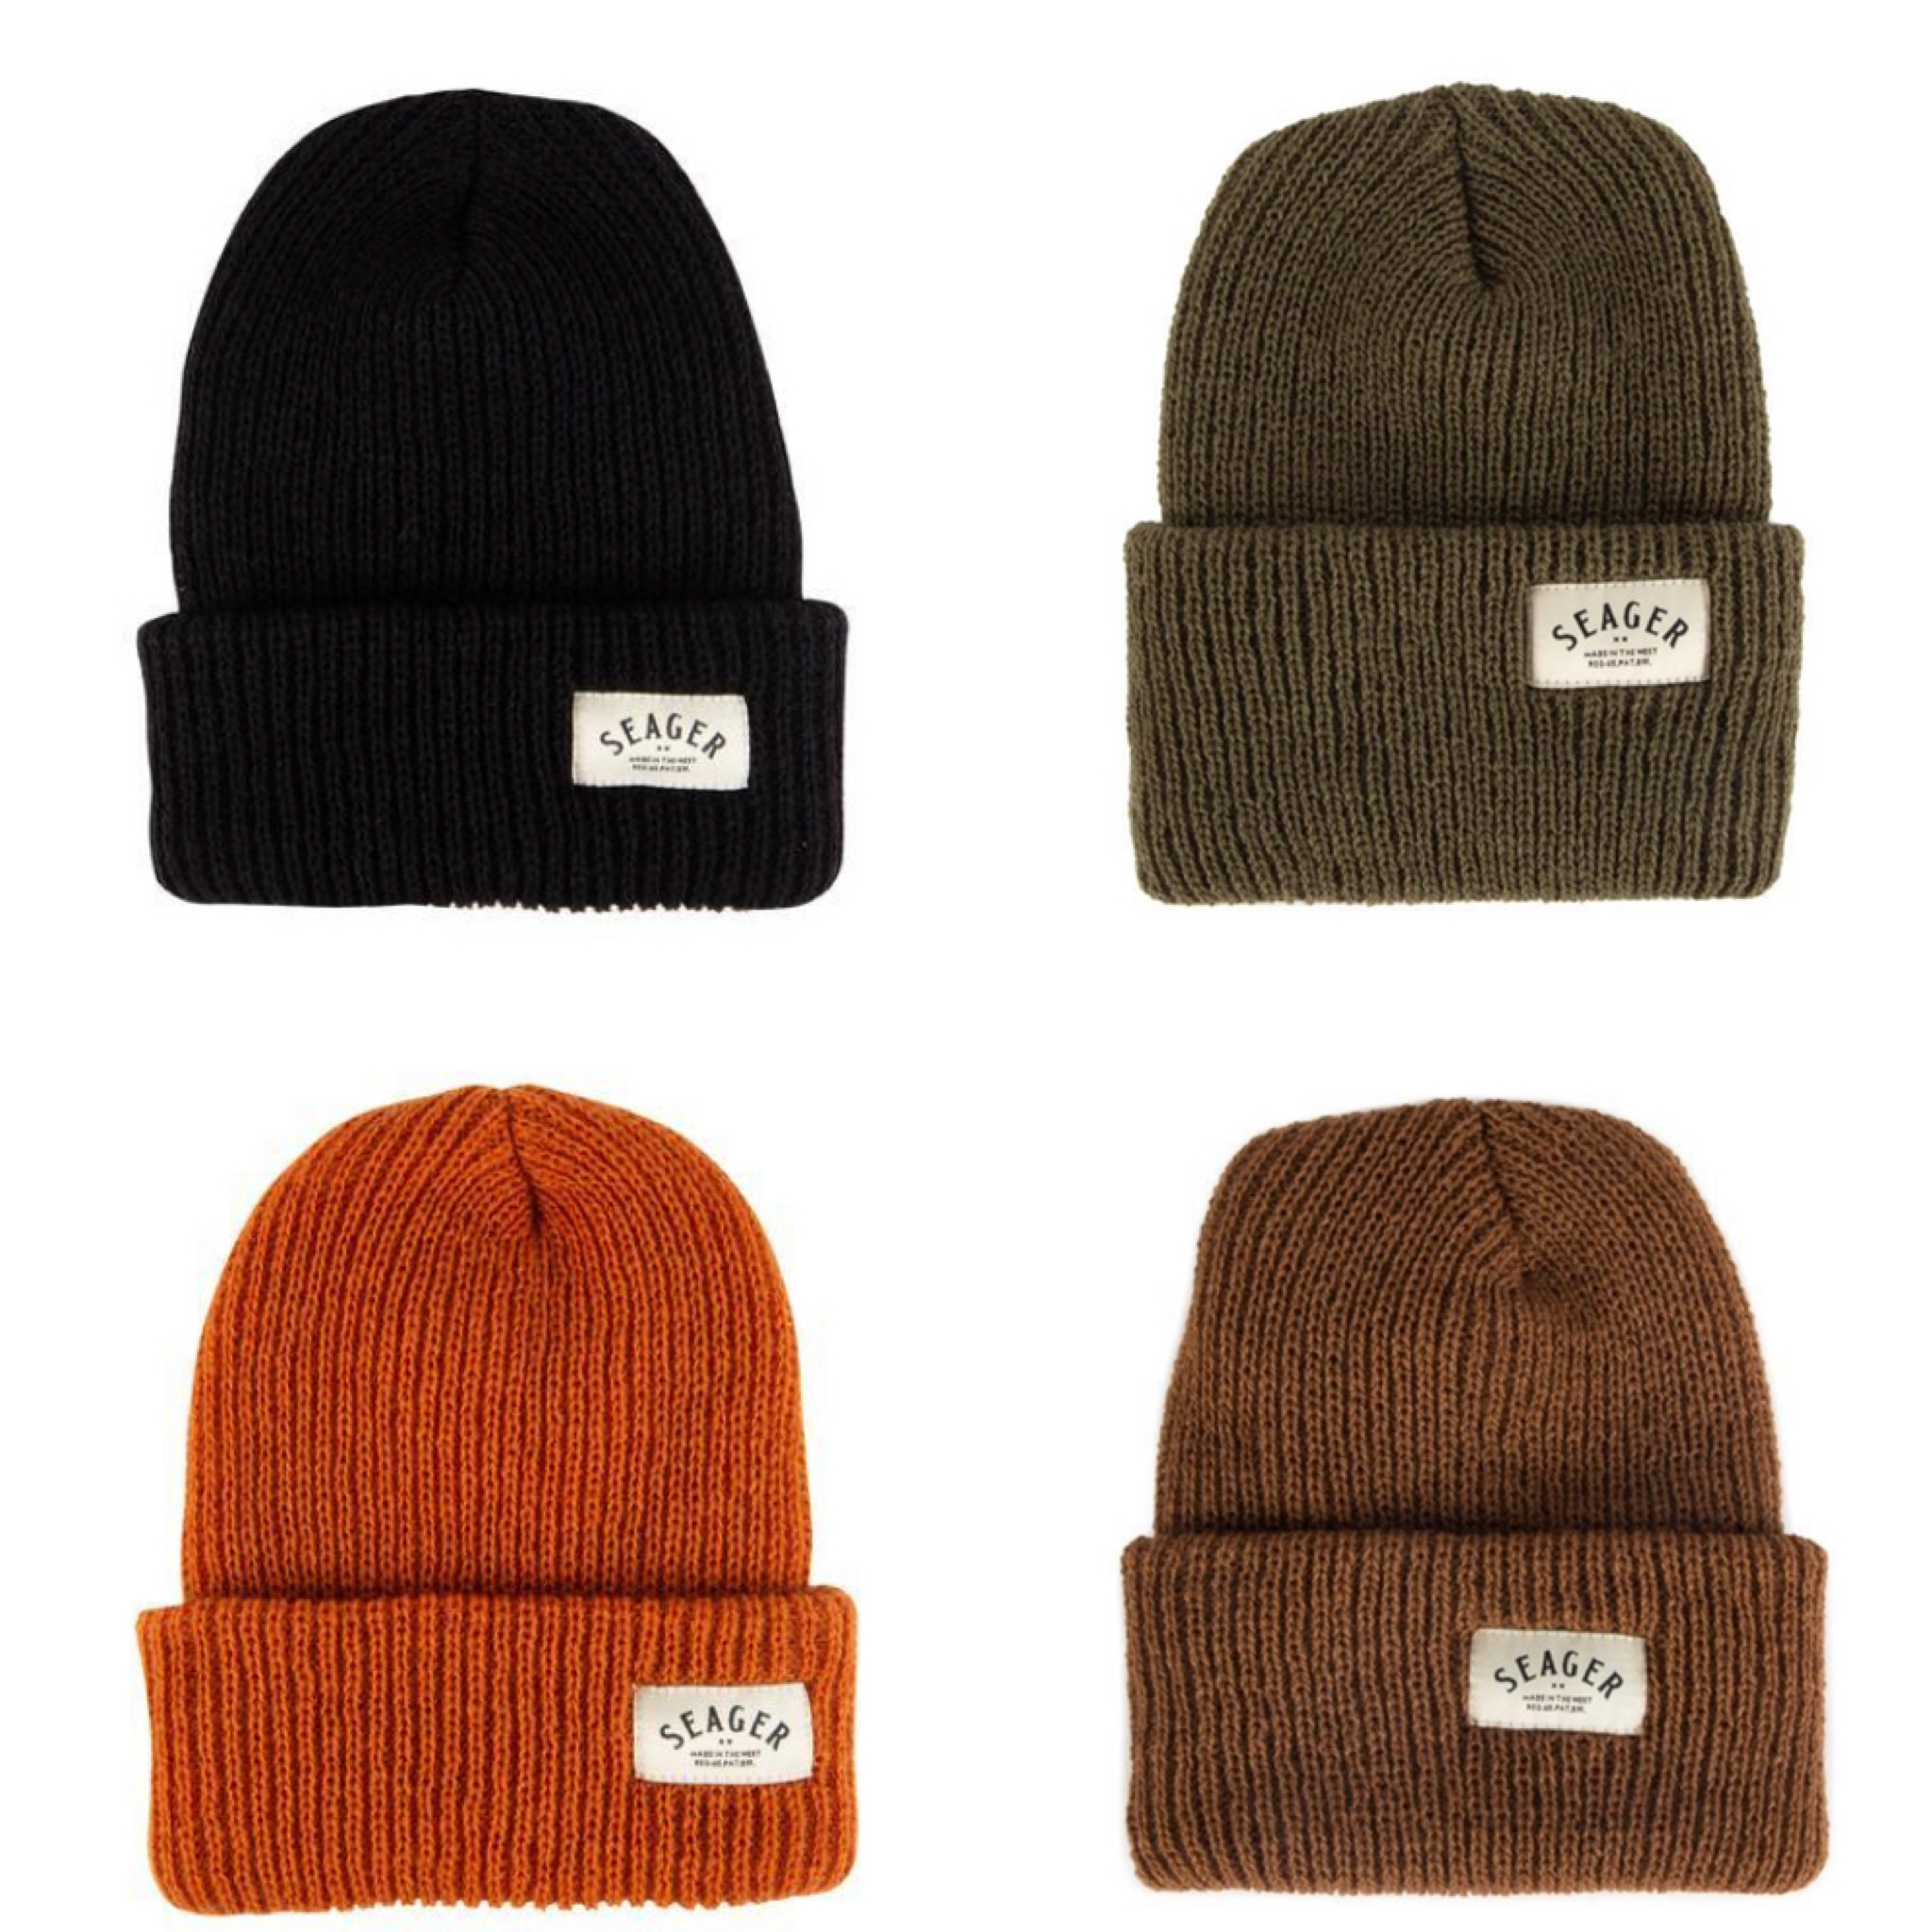 SEAGER #Service Beanie - 4 Colors